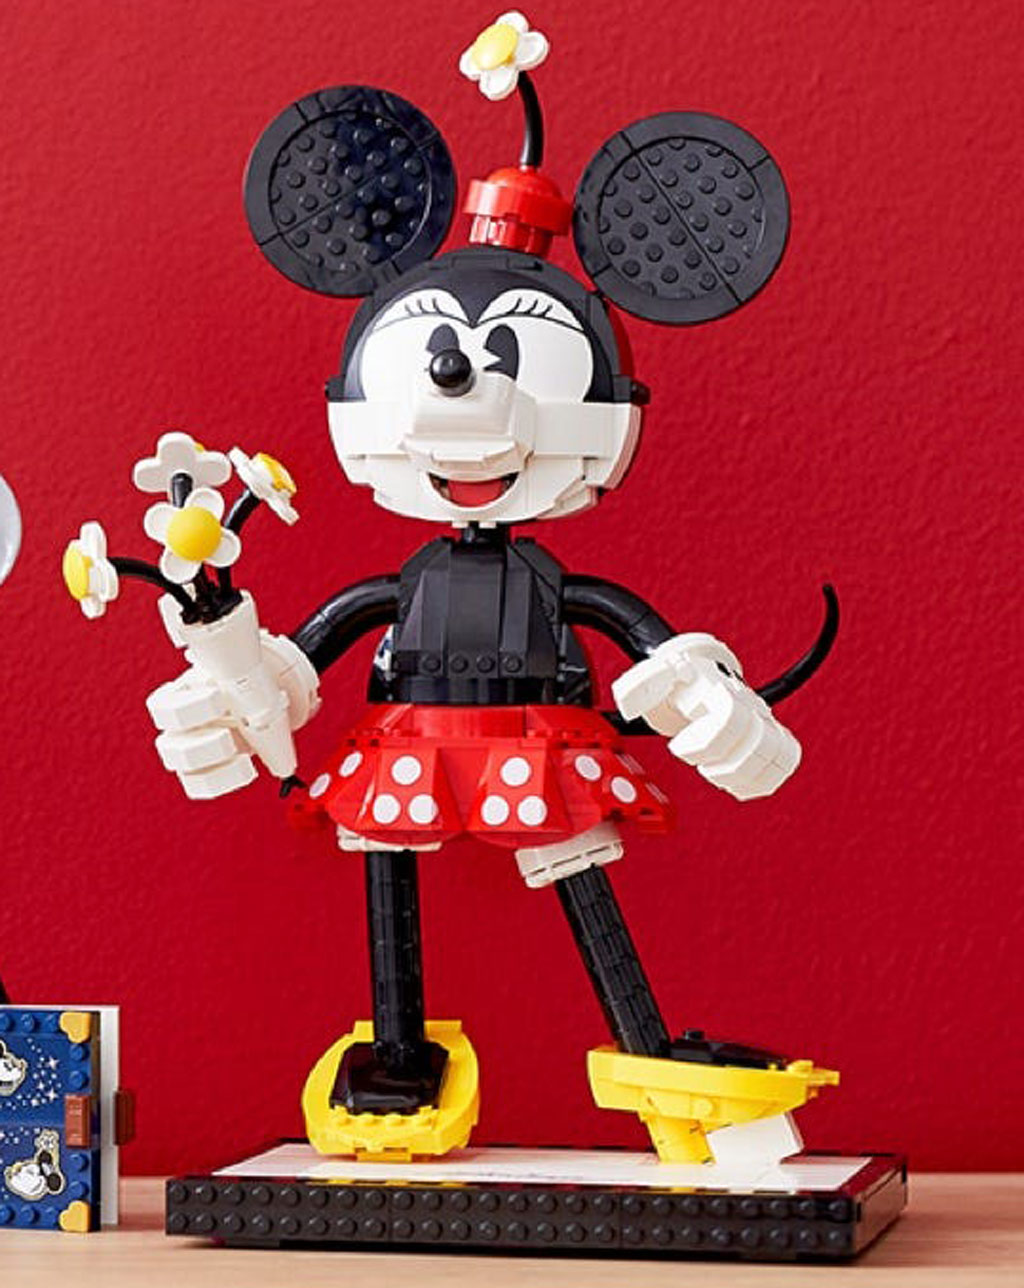 lego-disney-43179-mickey-mouse-and-minnie-mouse-buildable-characters-minnie-maus-2020 zusammengebaut.com